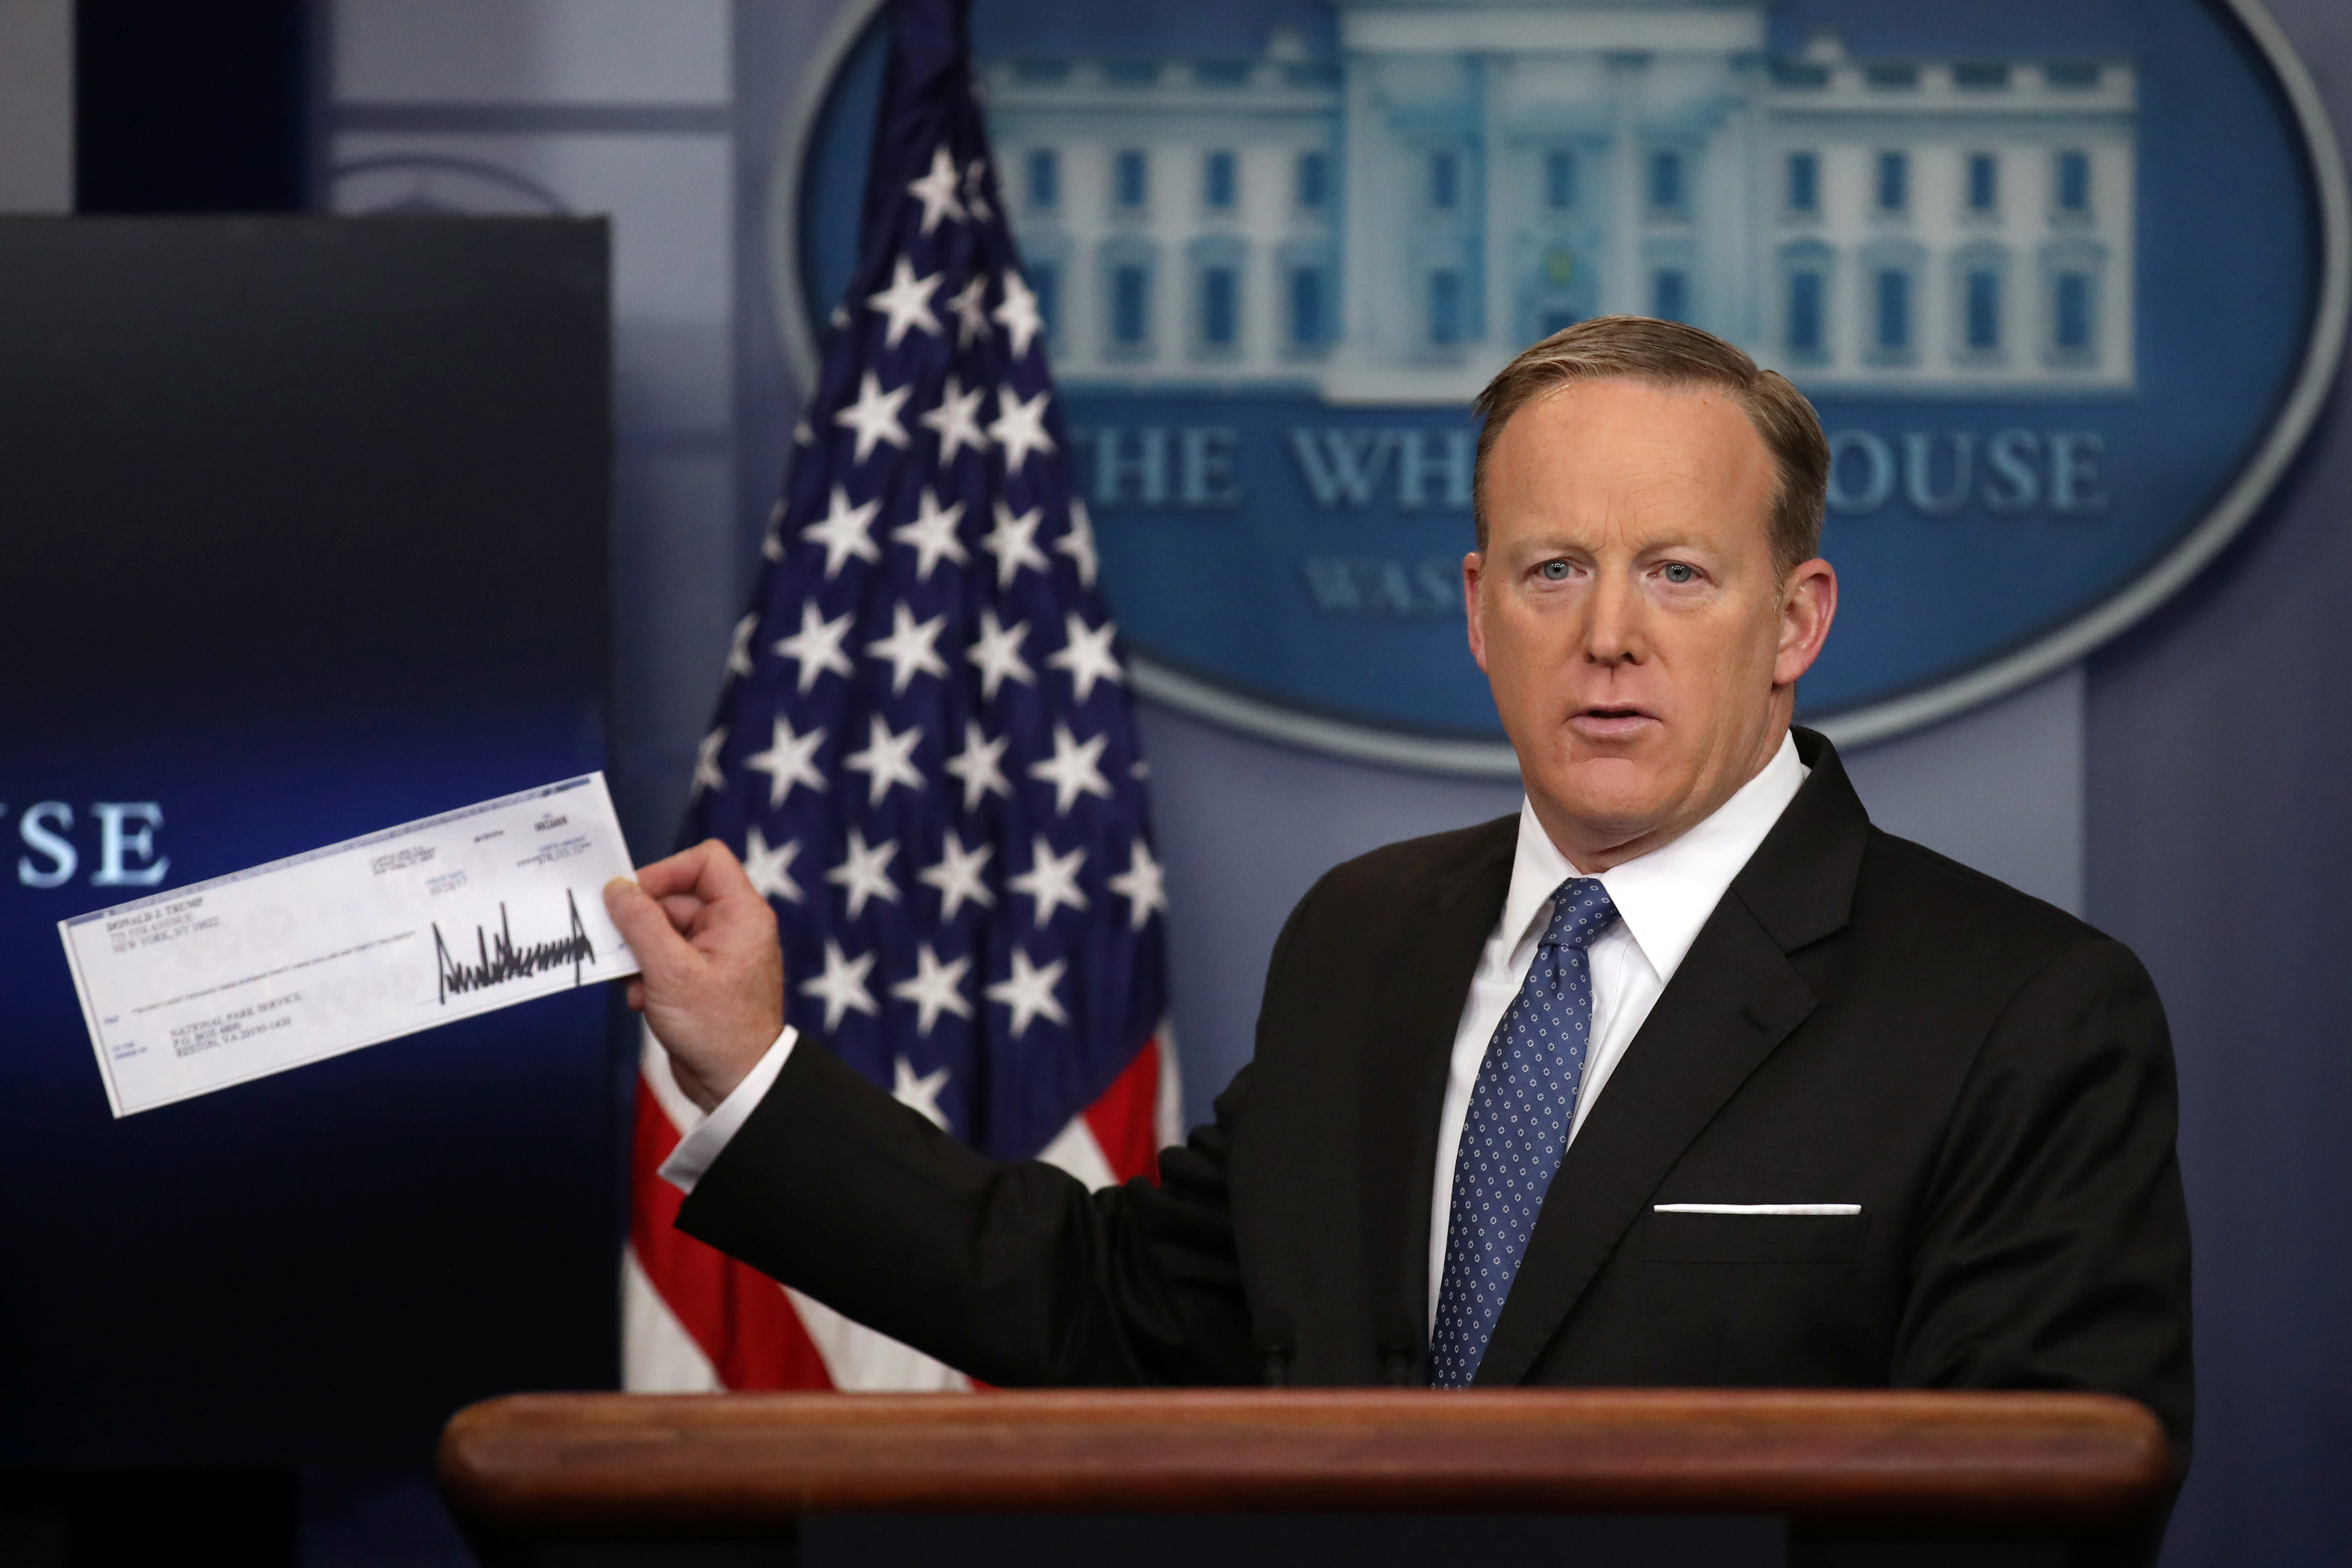 White House Press Secretary Sean Spicer shows a check from U.S. President Donald Trump's salary which will be donated to the National Park Service during a daily press briefing at the White House in Washington, U.S., April 3, 2017.